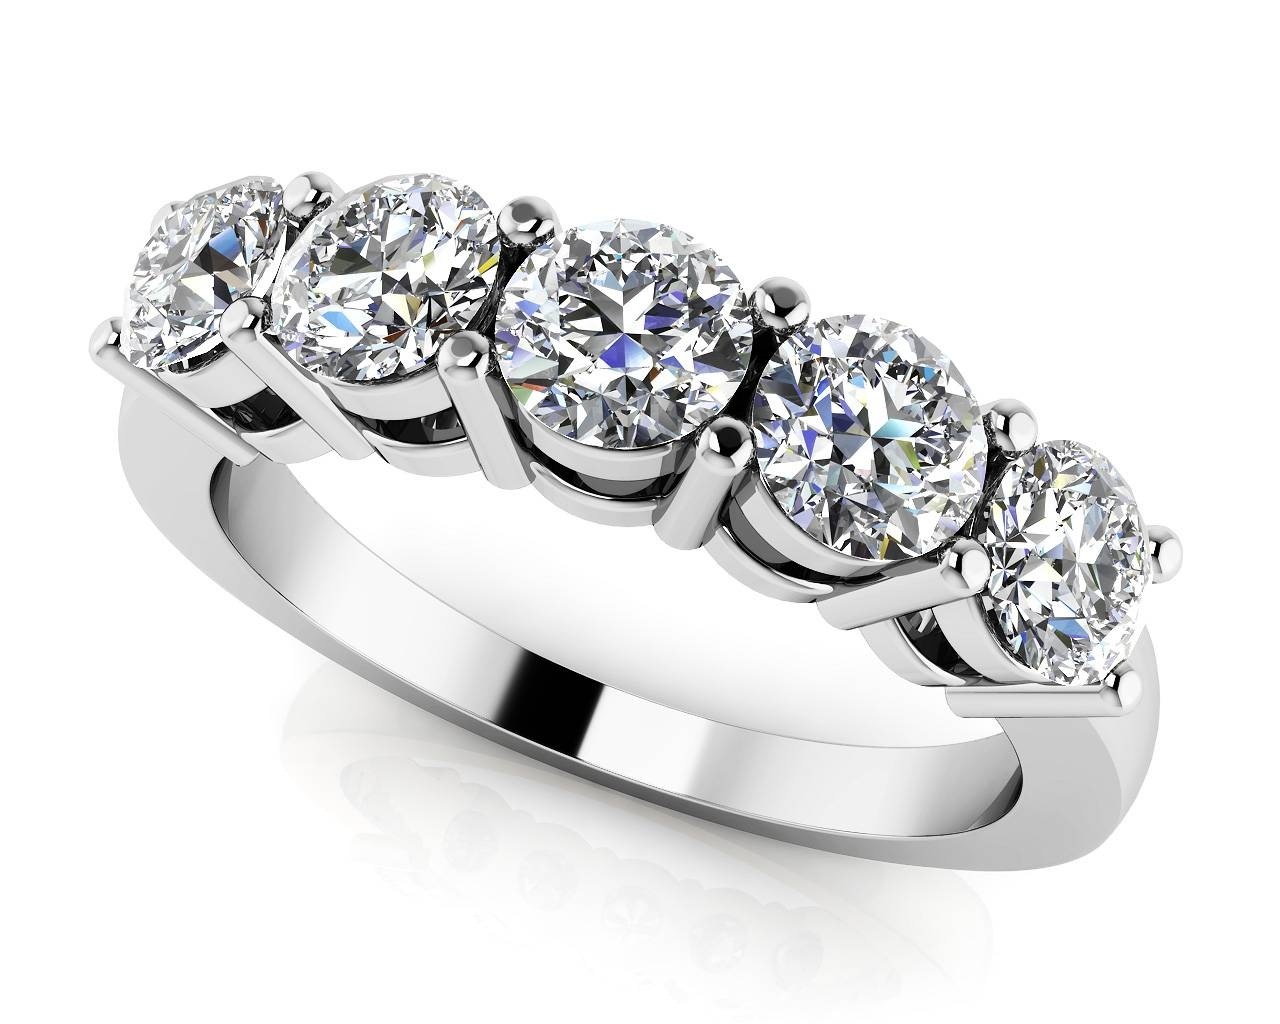 Design Your Own Diamond Anniversary Ring & Eternity Ring Intended For Most Recent Womens Anniversary Rings (Gallery 4 of 25)